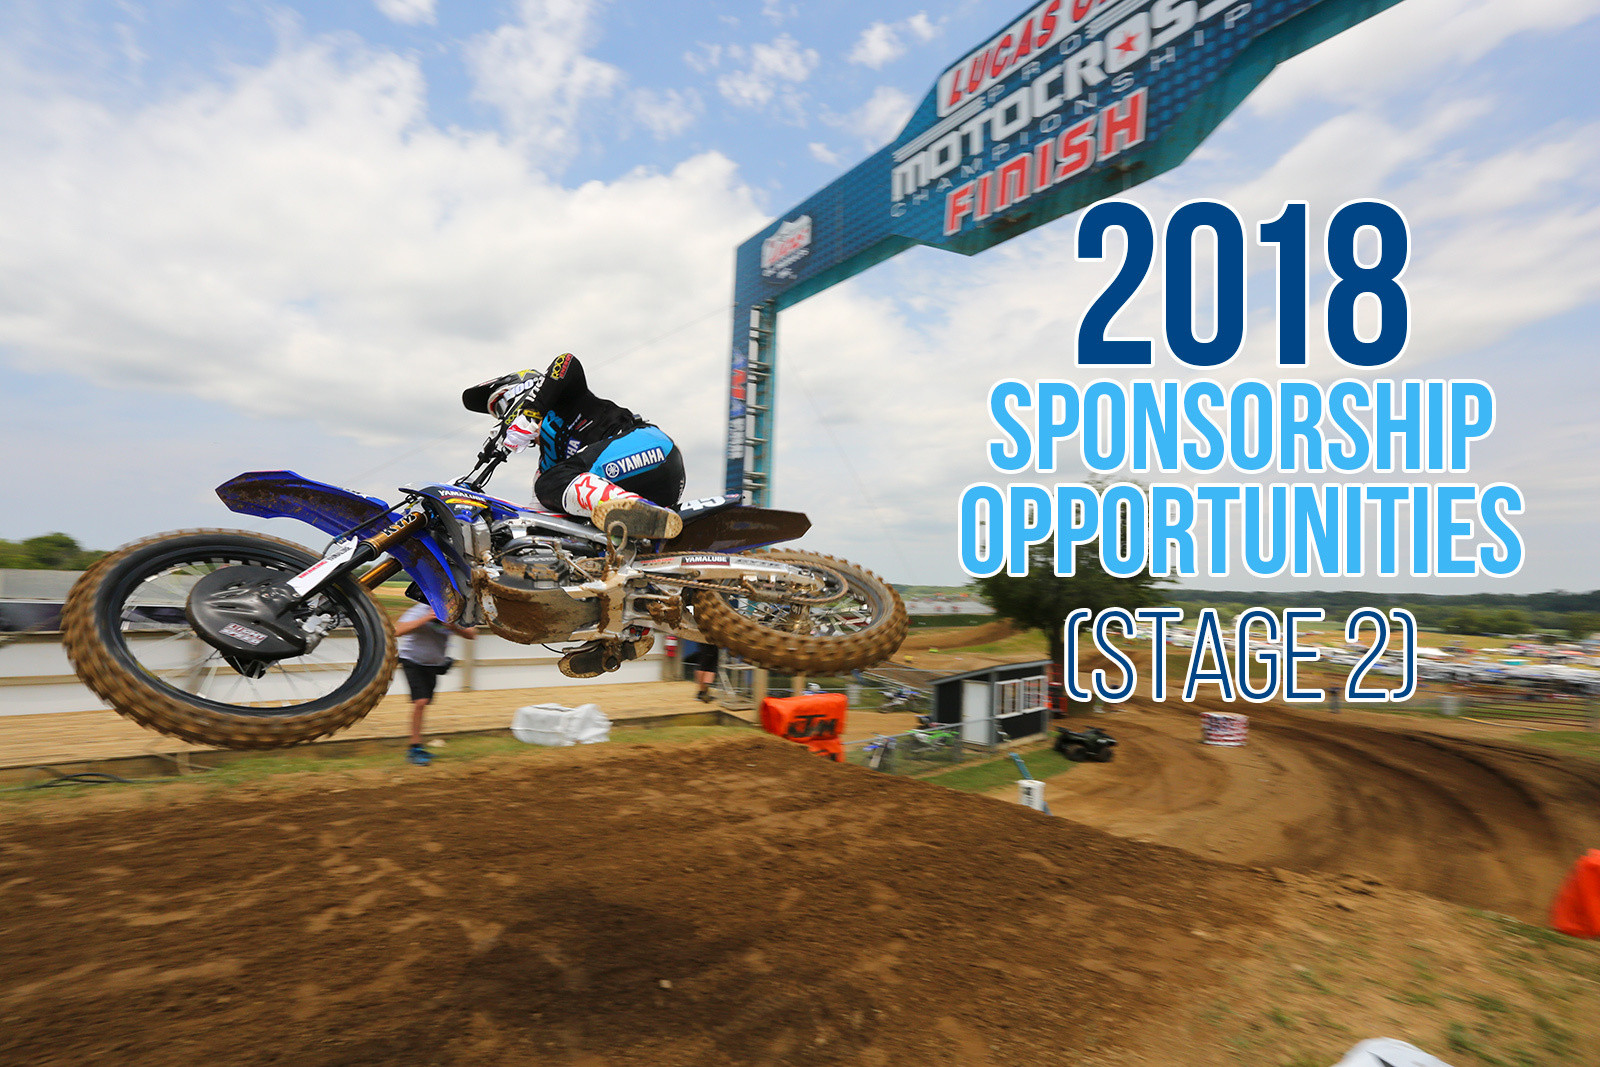 resume Atv Sponsorship Resume 2018 sponsorship season opportunities motocross feature stories opportunities